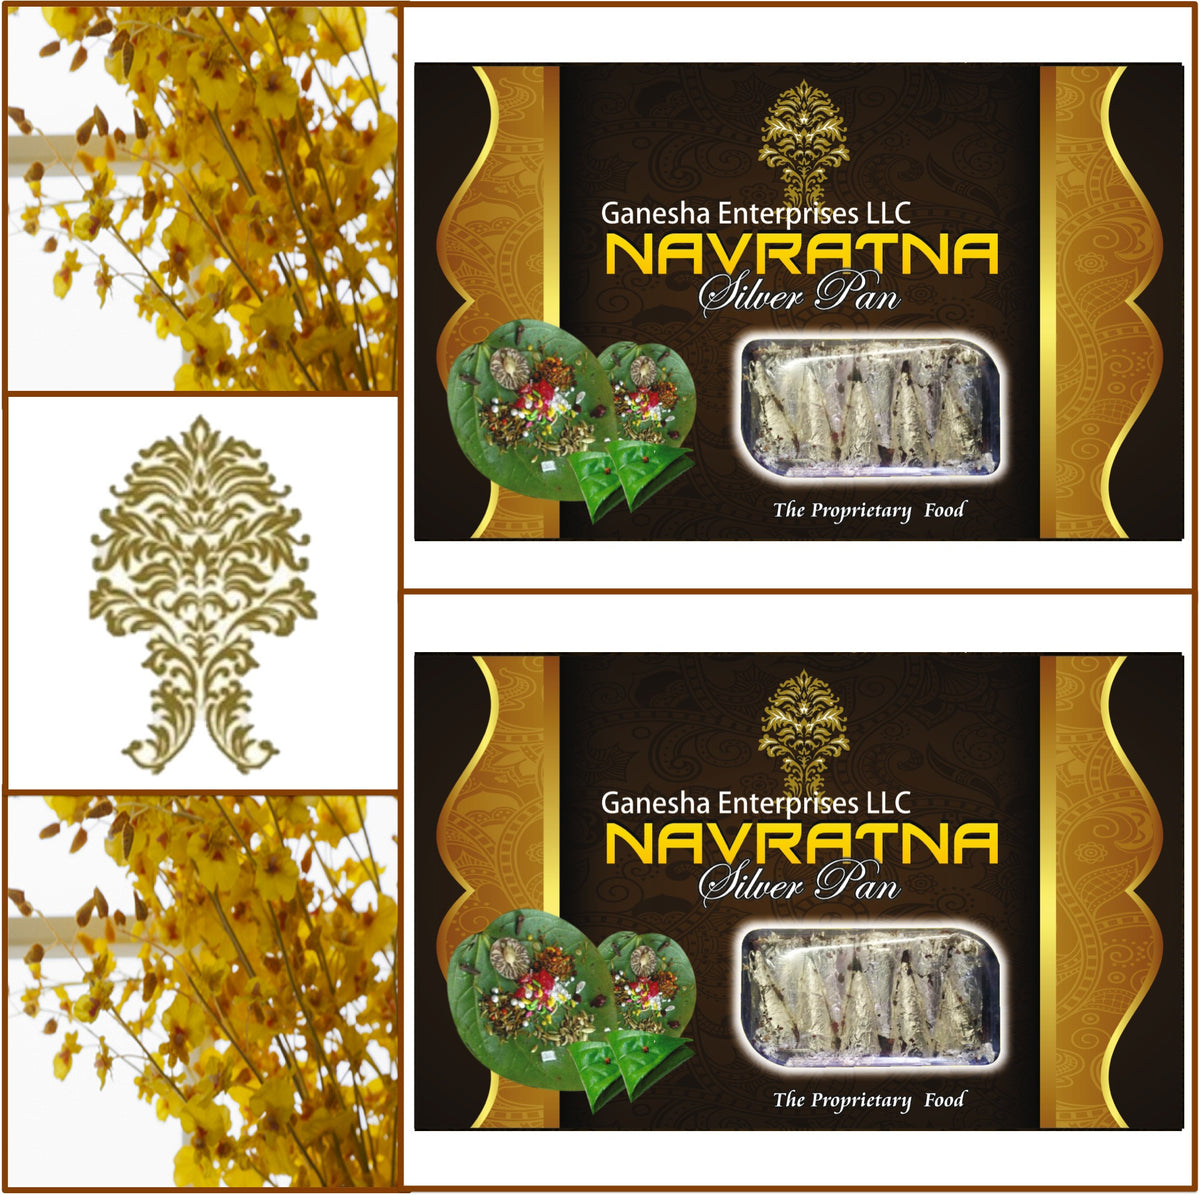 2 Boxes Navratna Silver Pan (Paan) 10 Pieces Each - Total 20 Pieces